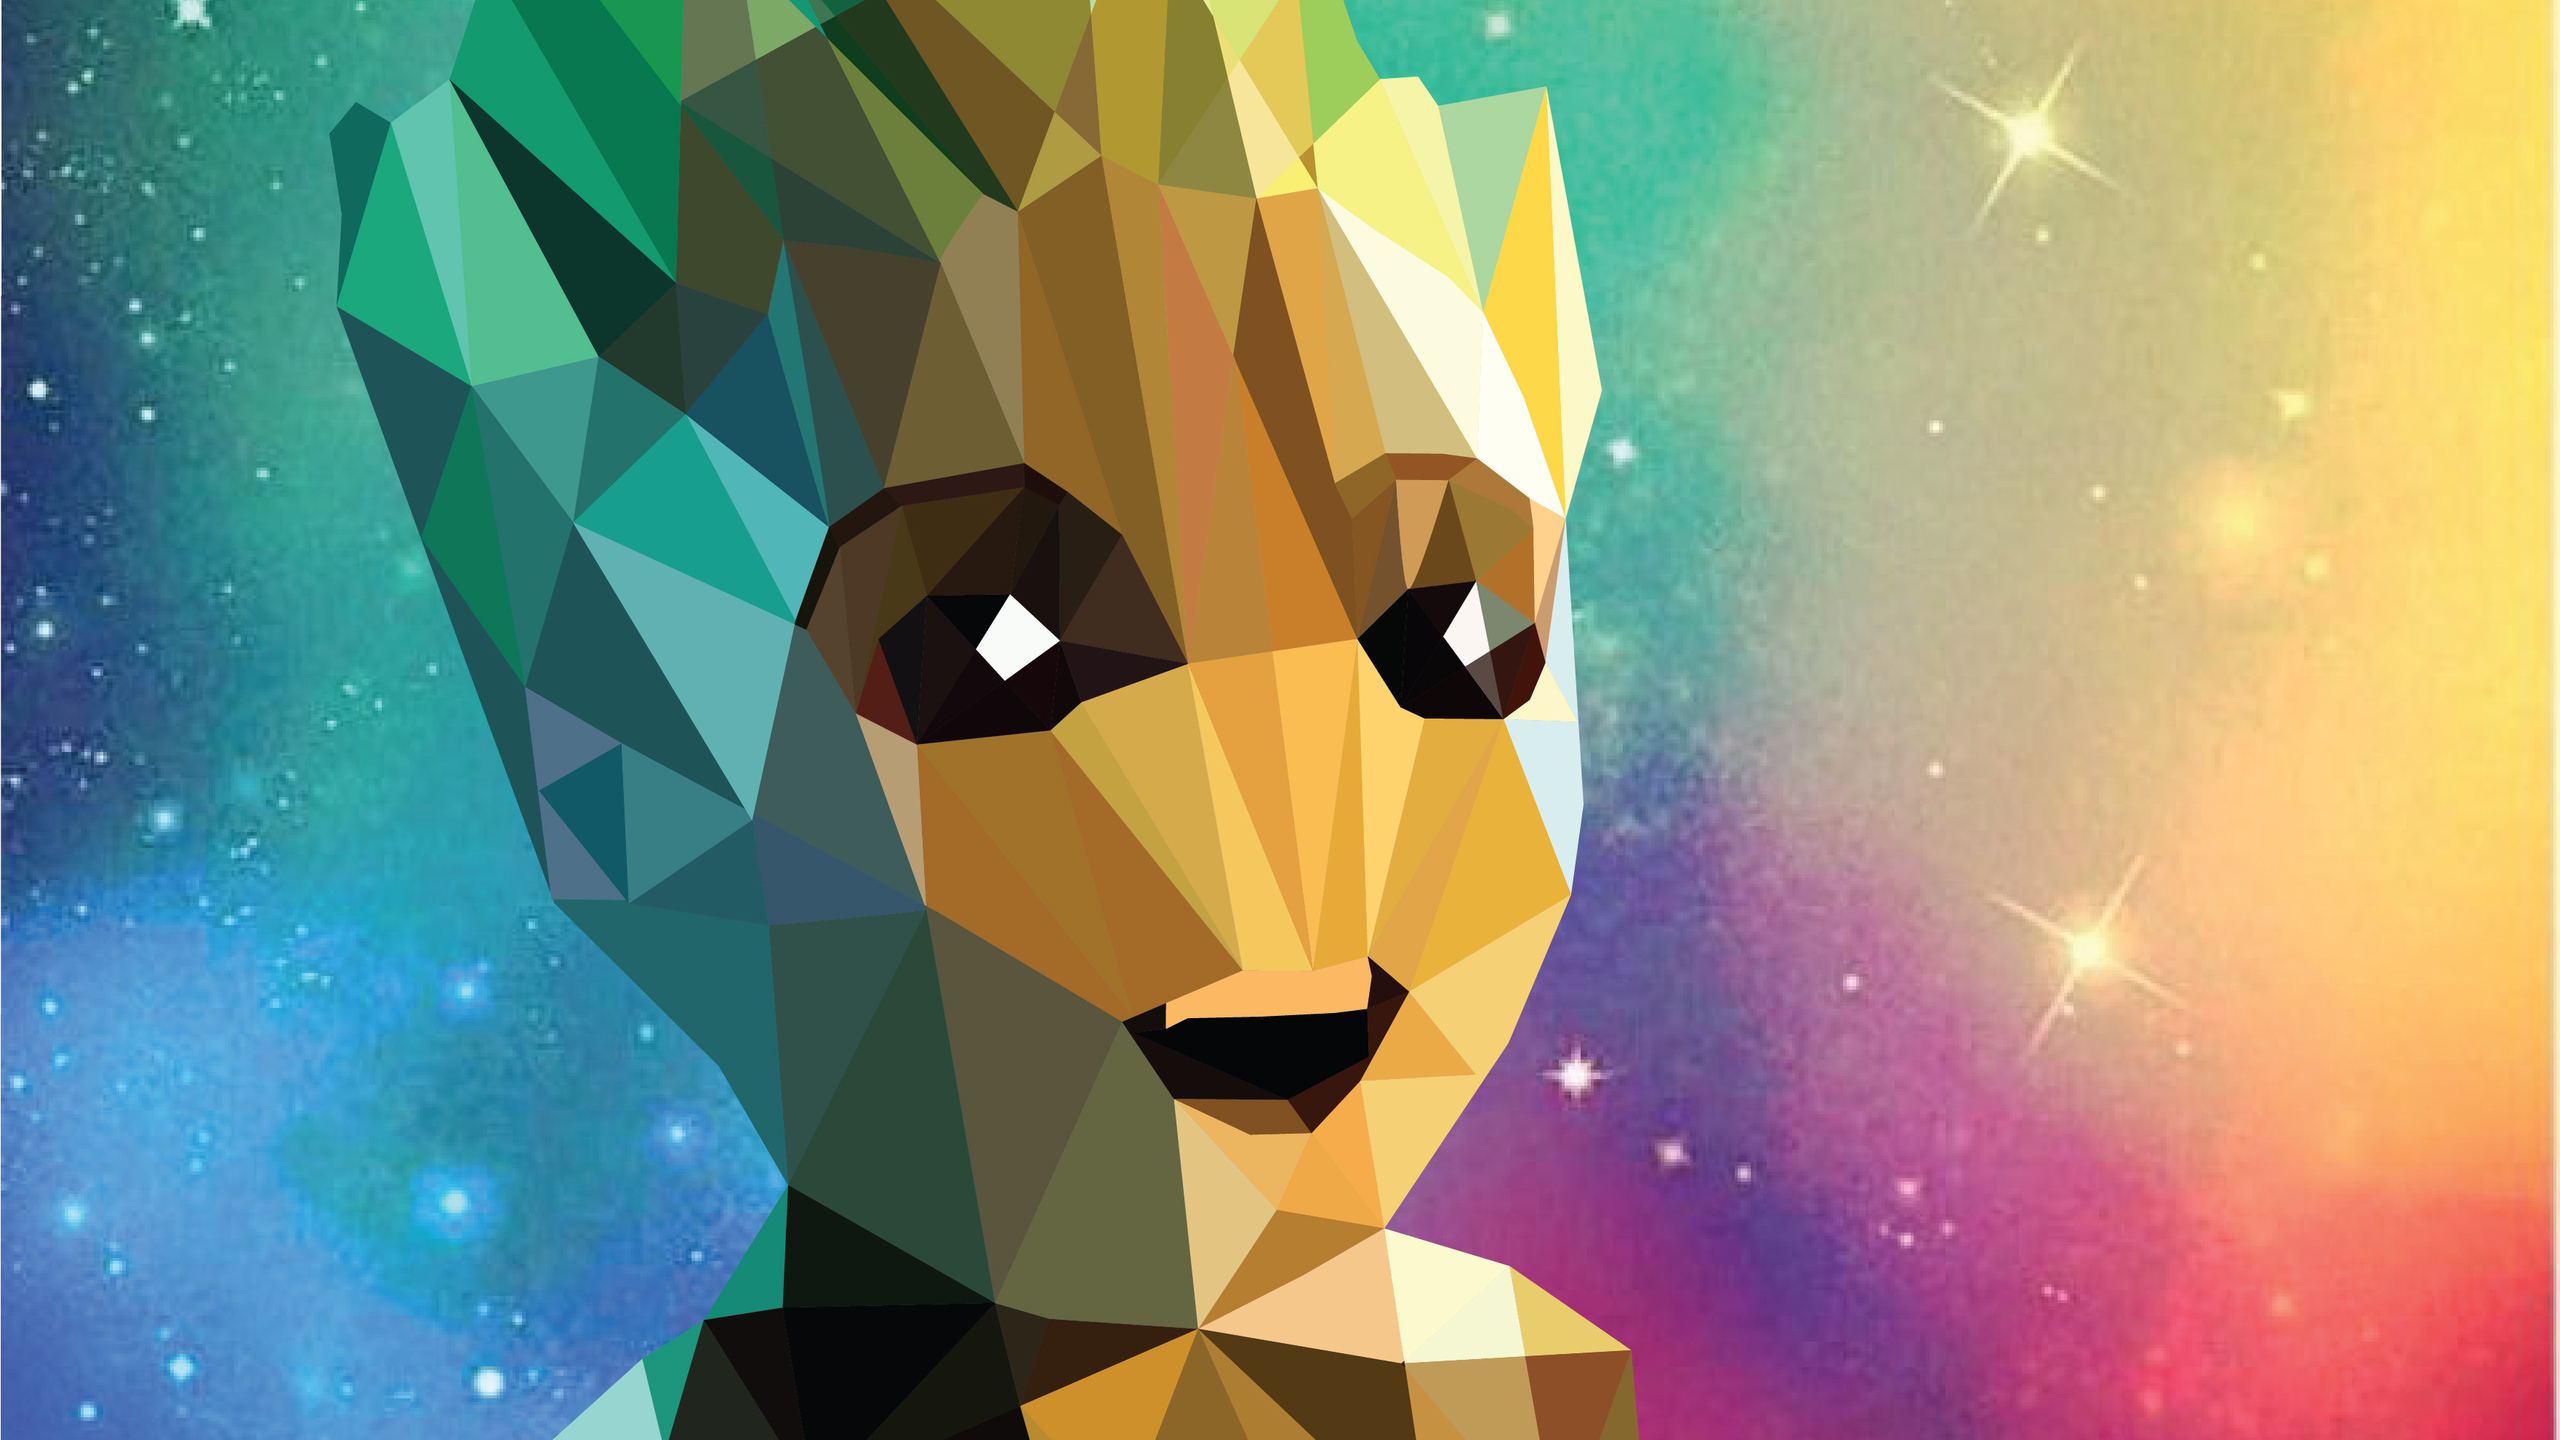 2560x1440 Baby Groot Low Poly Portrait 1440p Resolution Hd 4k Wallpapers Images Backgrounds Photos And Pictures